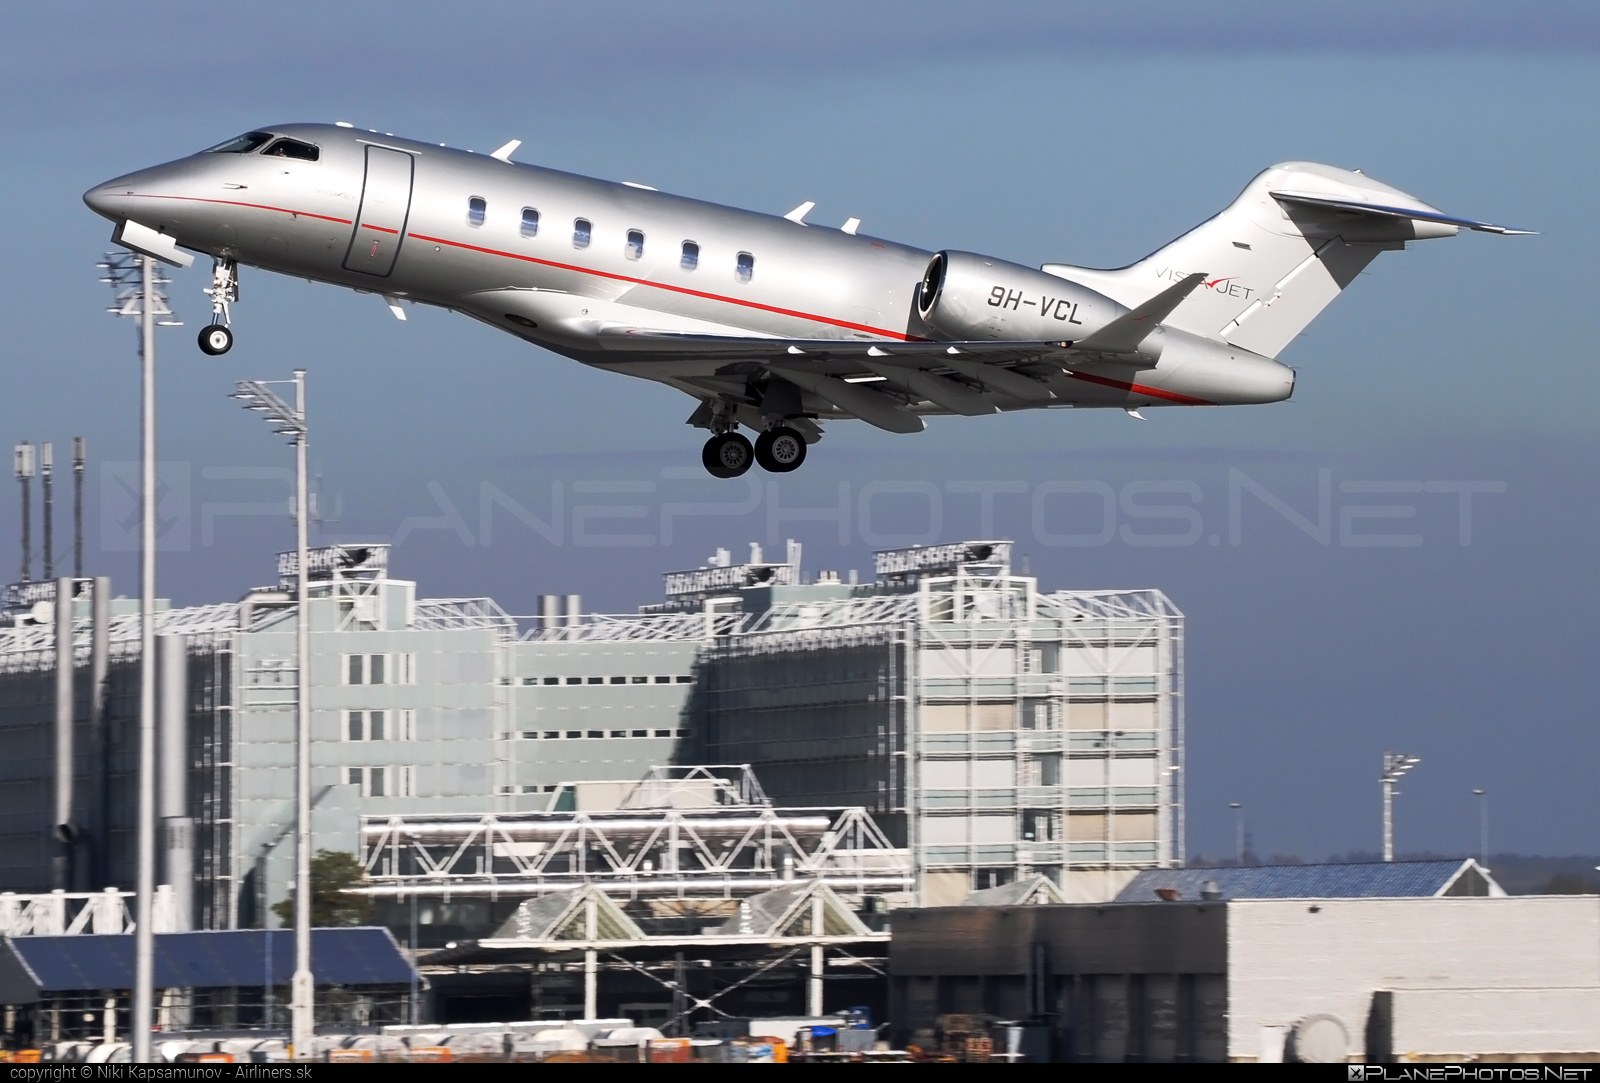 Bombardier Challenger 350 (BD-100-1A10) - 9H-VCL operated by VistaJet #bd1001a10 #bombardier #challenger350 #vistajet